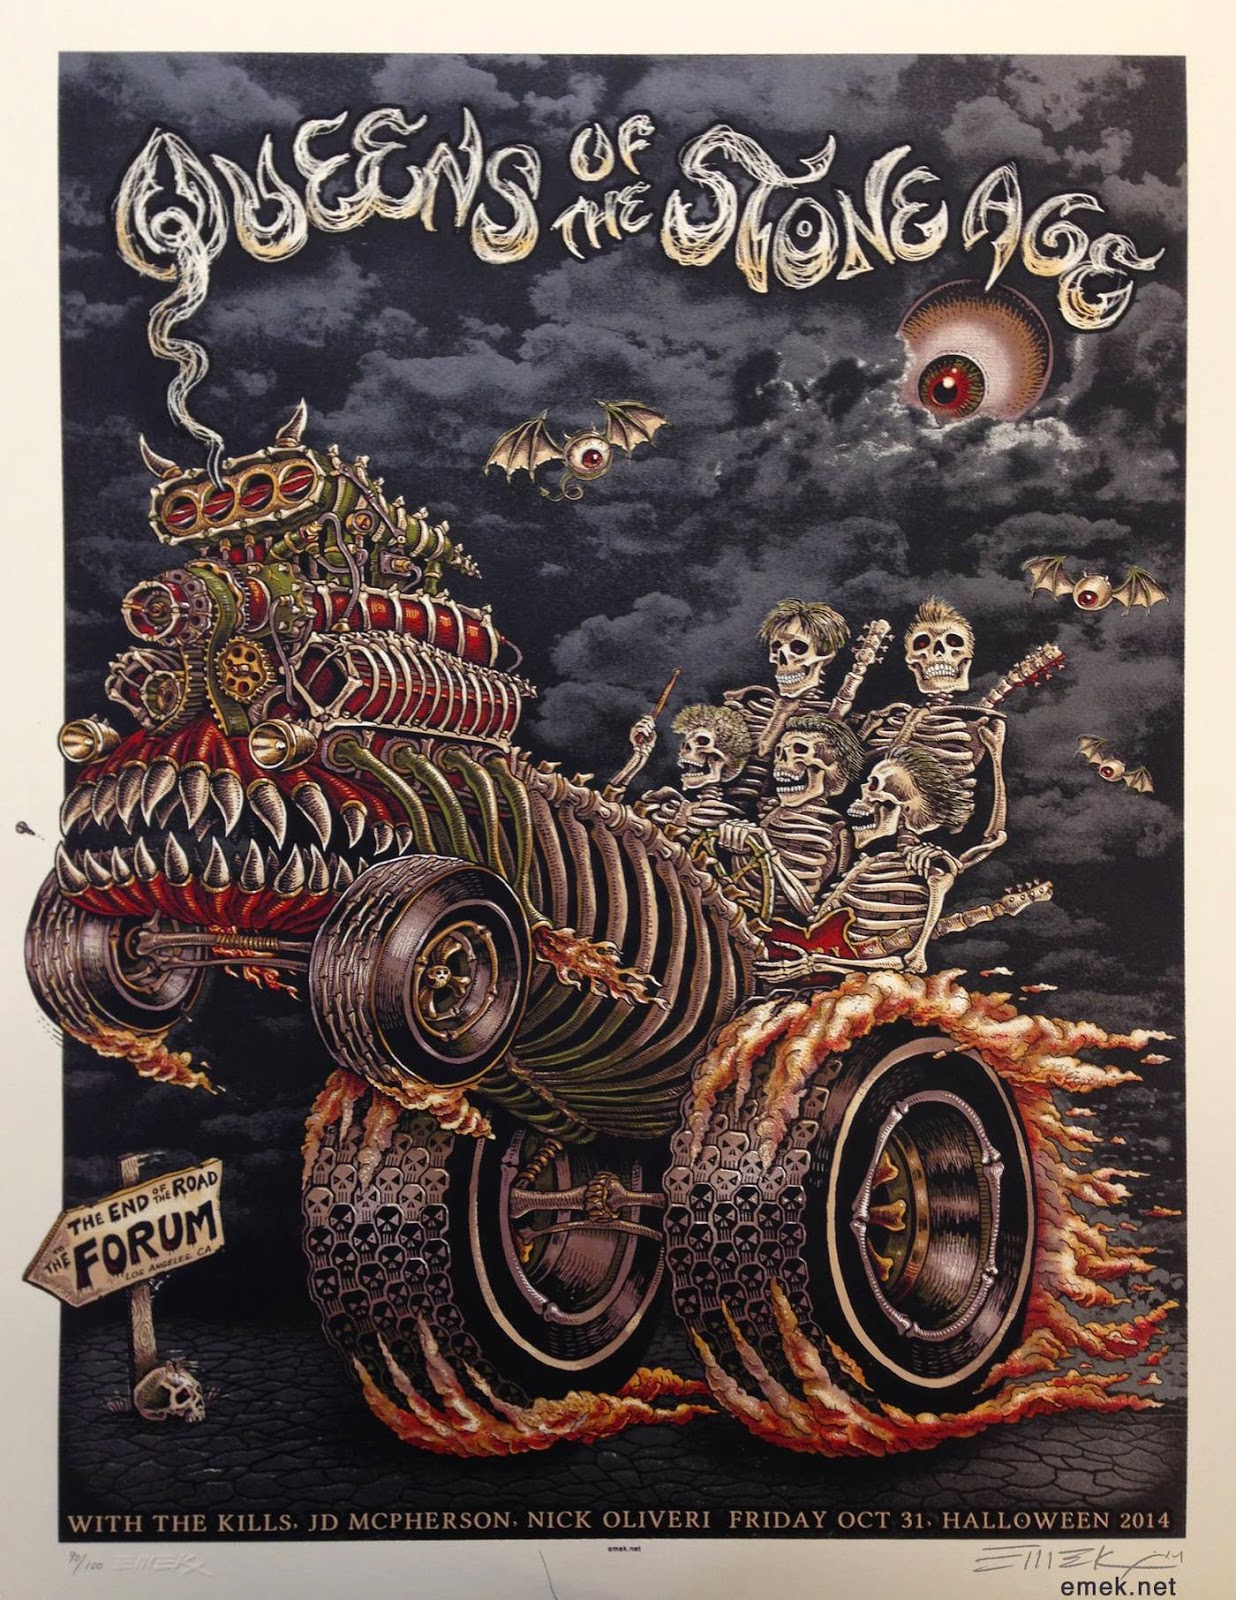 emek queens of the stone age los angeles halloween poster release - Halloween Mondo Poster